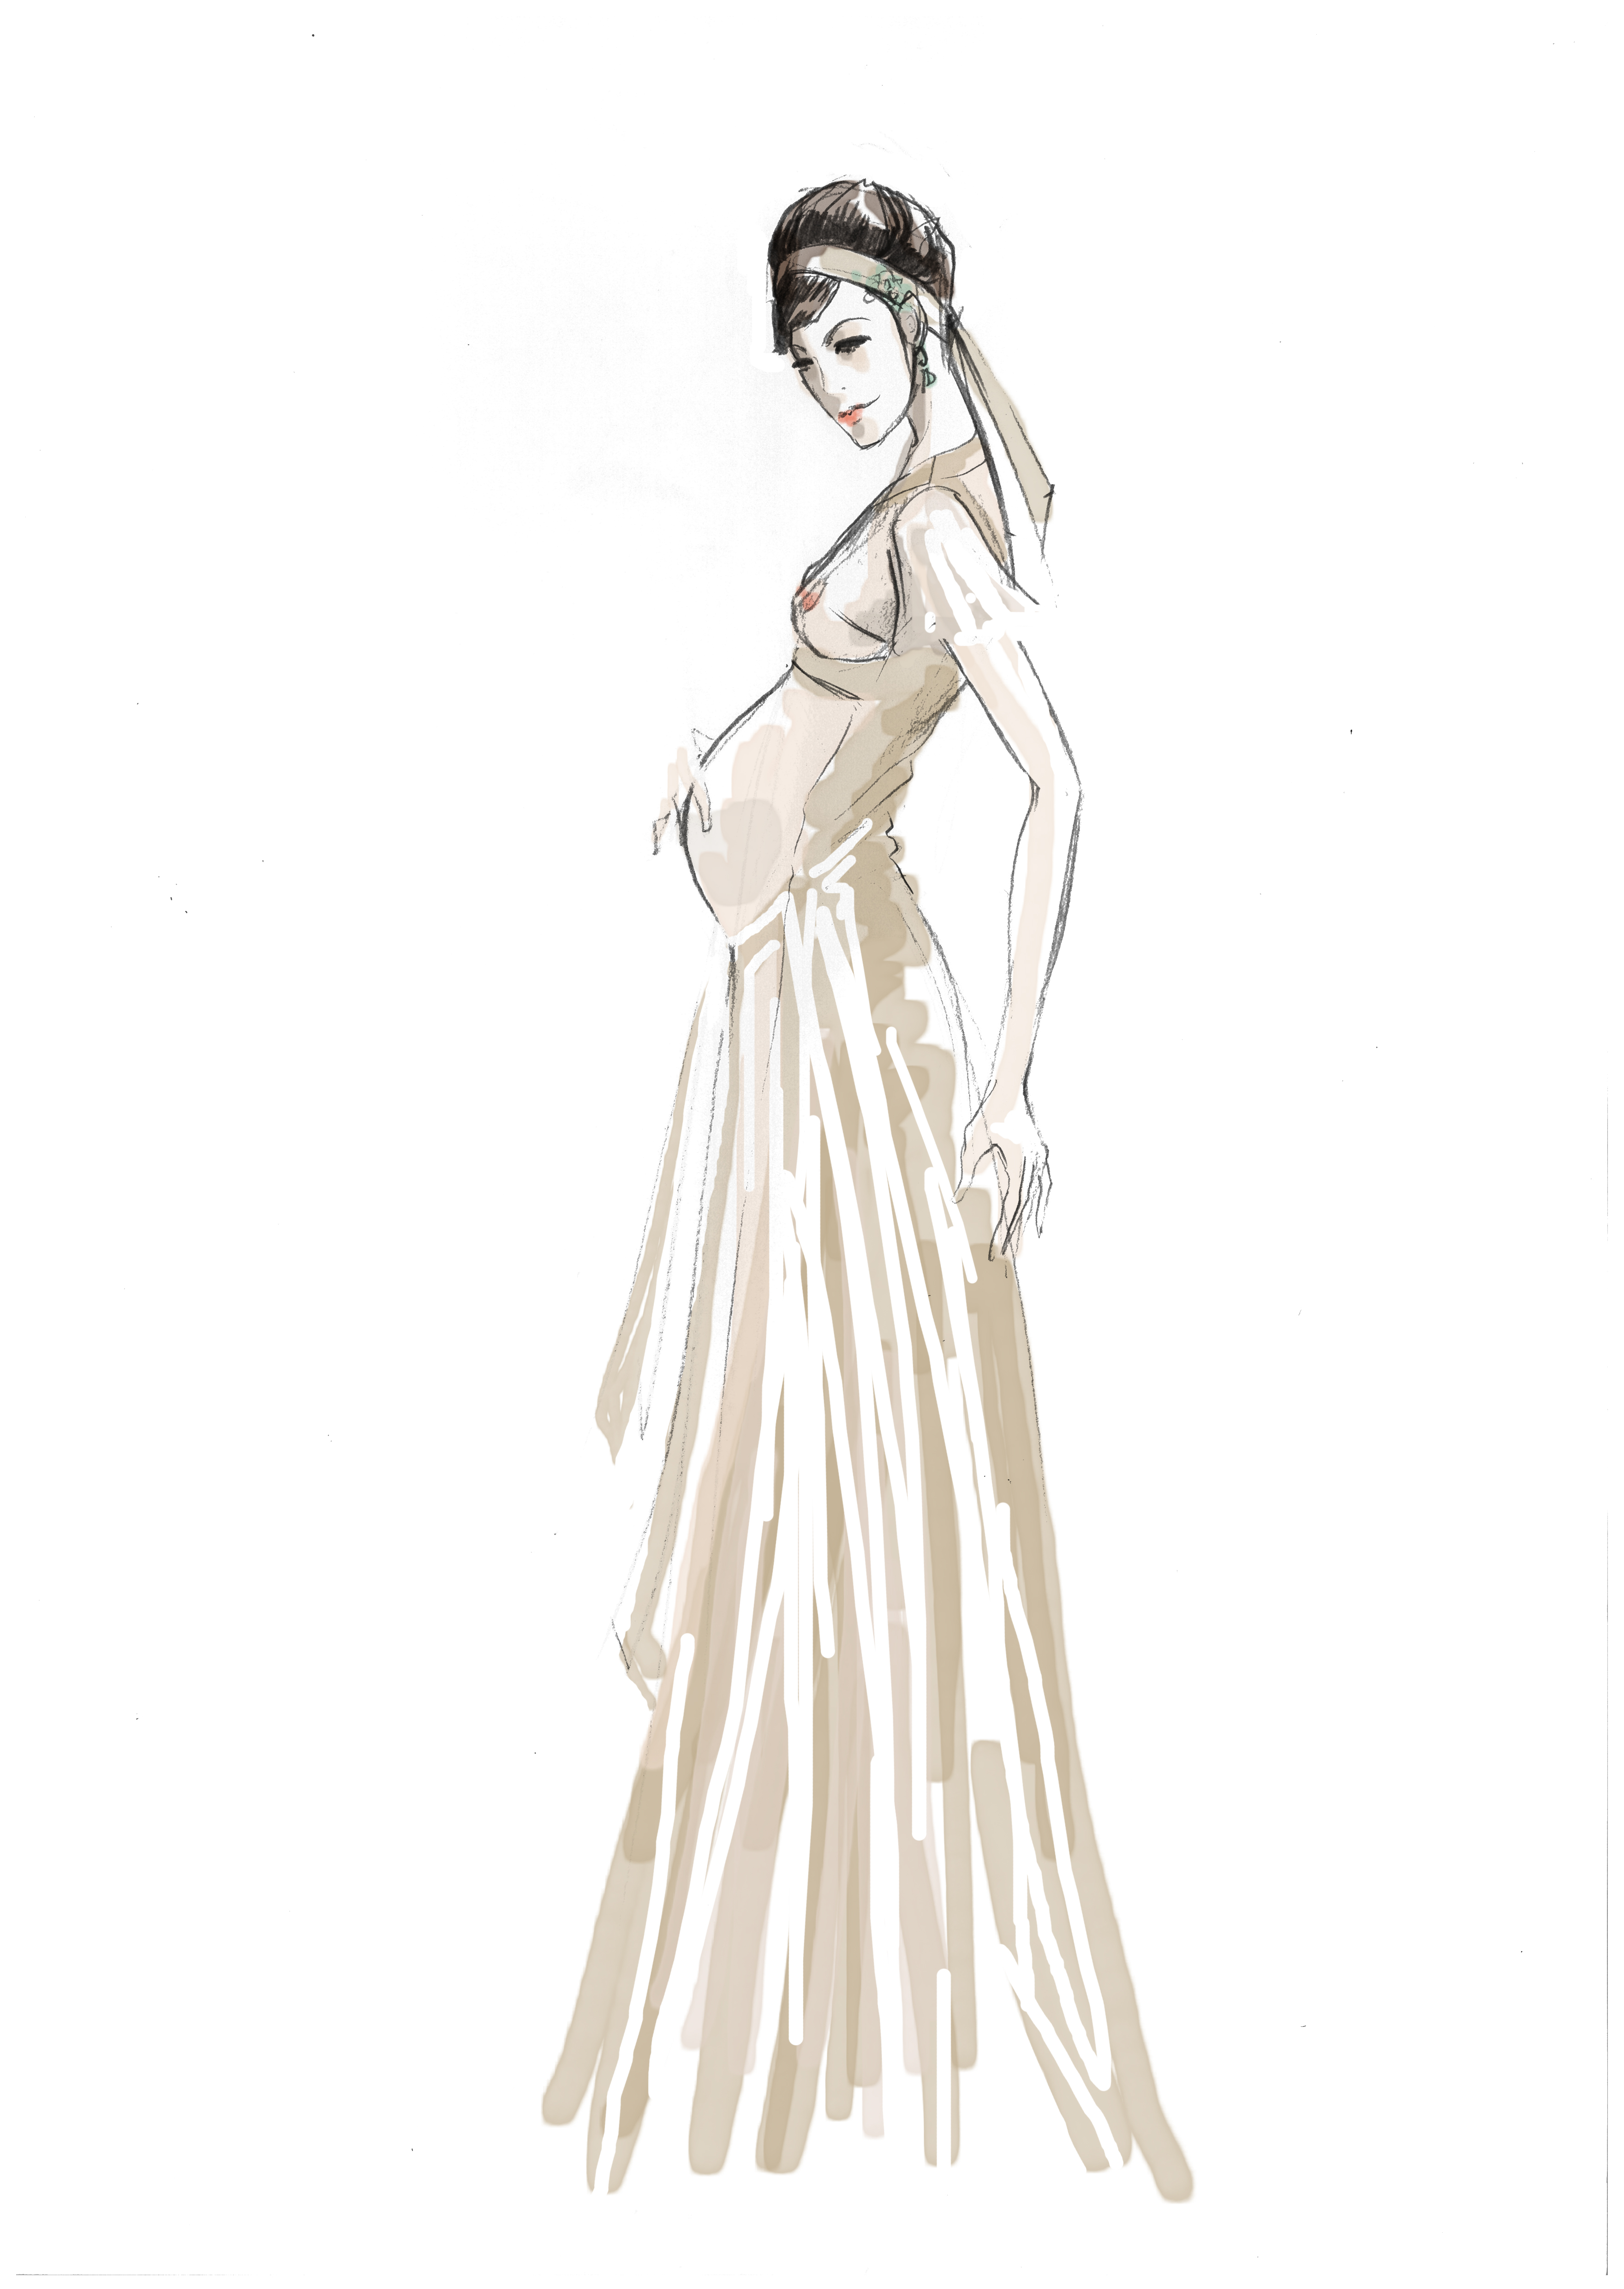 Rough for pregnancy gala dress | pencil on paper, digitally colored, ©2013